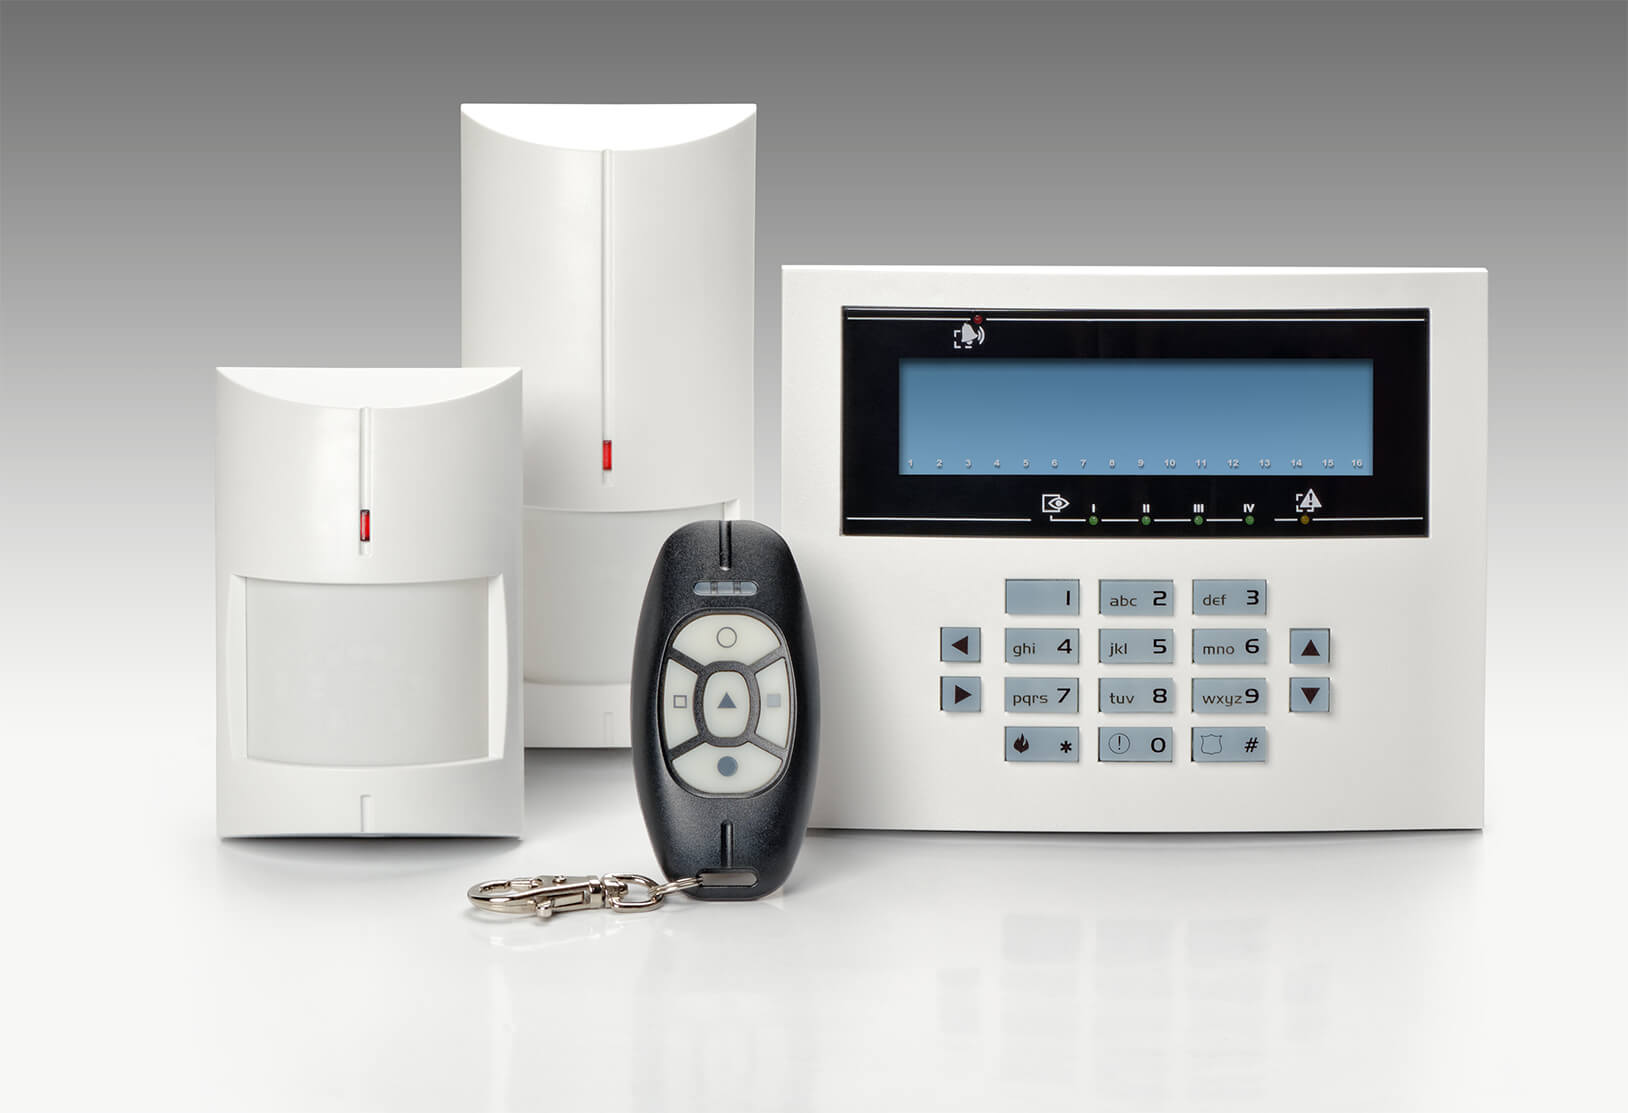 Commercial Burglar Alarms For Business in Camden Town NW1  - Local Camden Town NW1 burglar alarm company.Call 02078872244 - Dedicated to Safety & Security. Companies, shops and homes ..